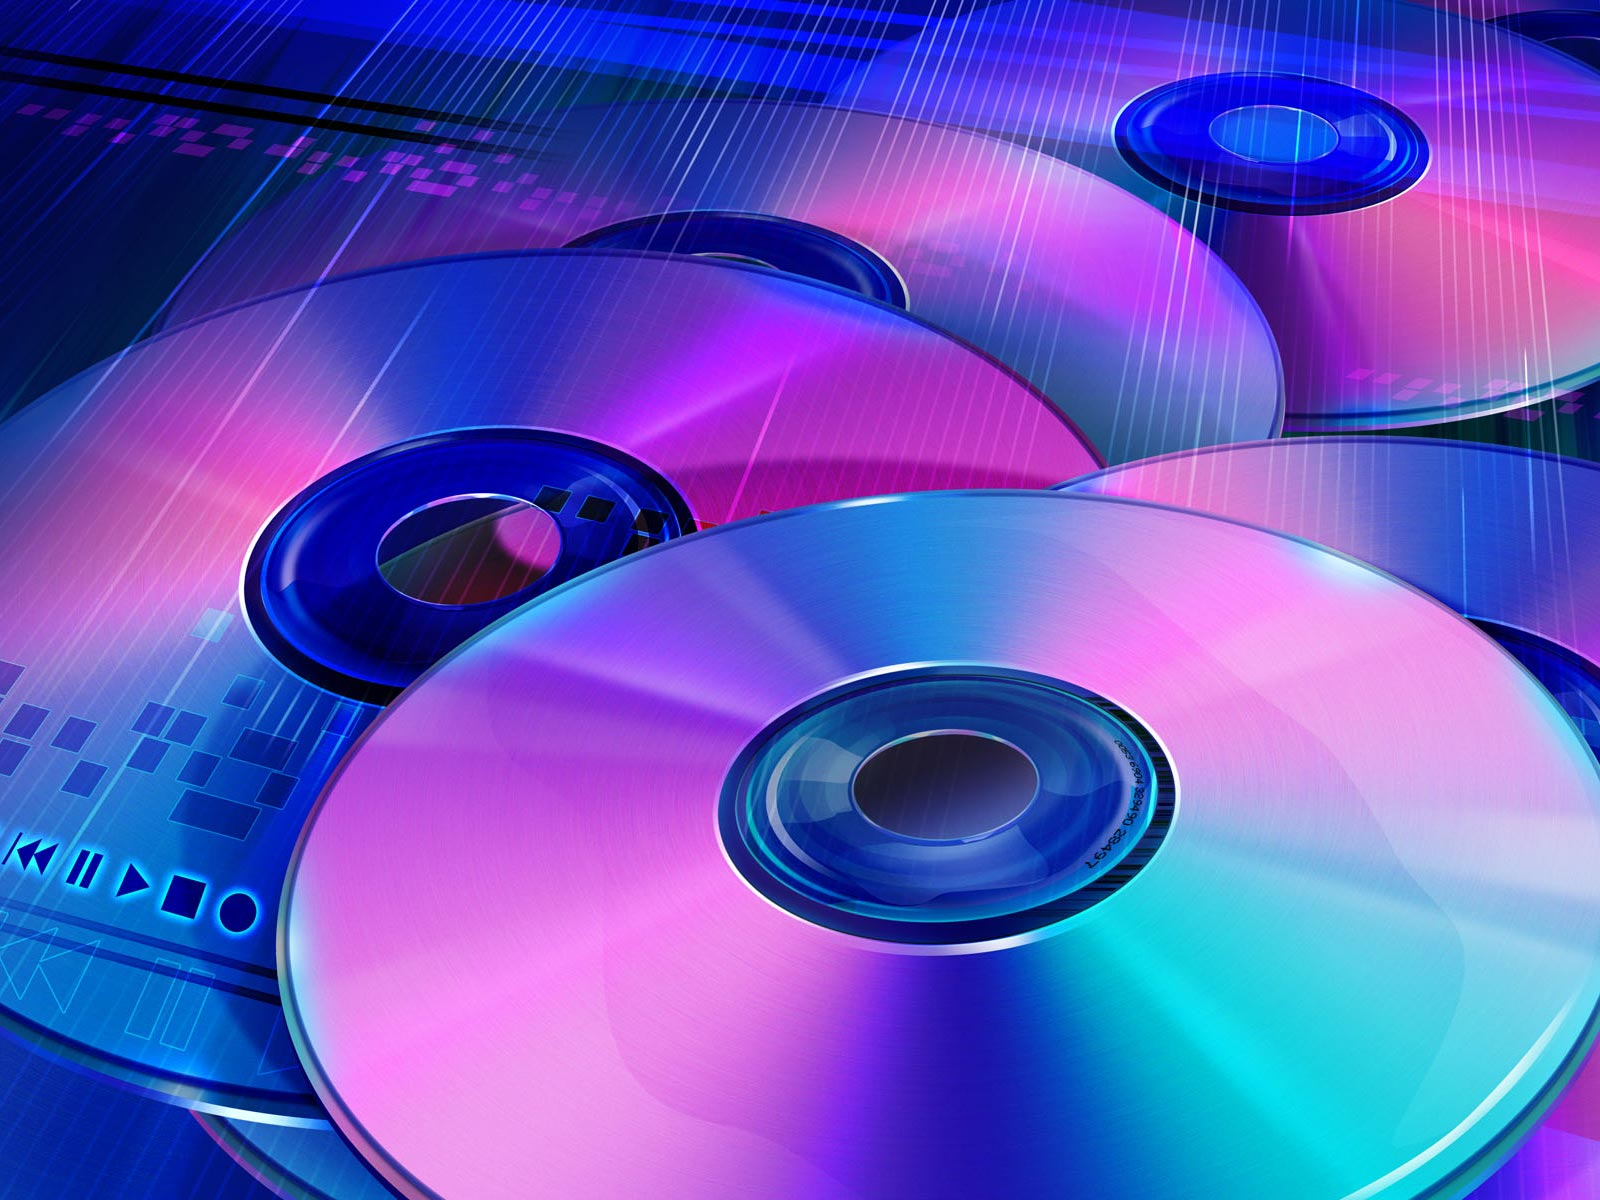 image about Printable Blank Cds identify CMC Skilled, 52X CD-R, White Inkjet Hub Printable, 600 Disc Tape Wrap, Valueline - Overall Media